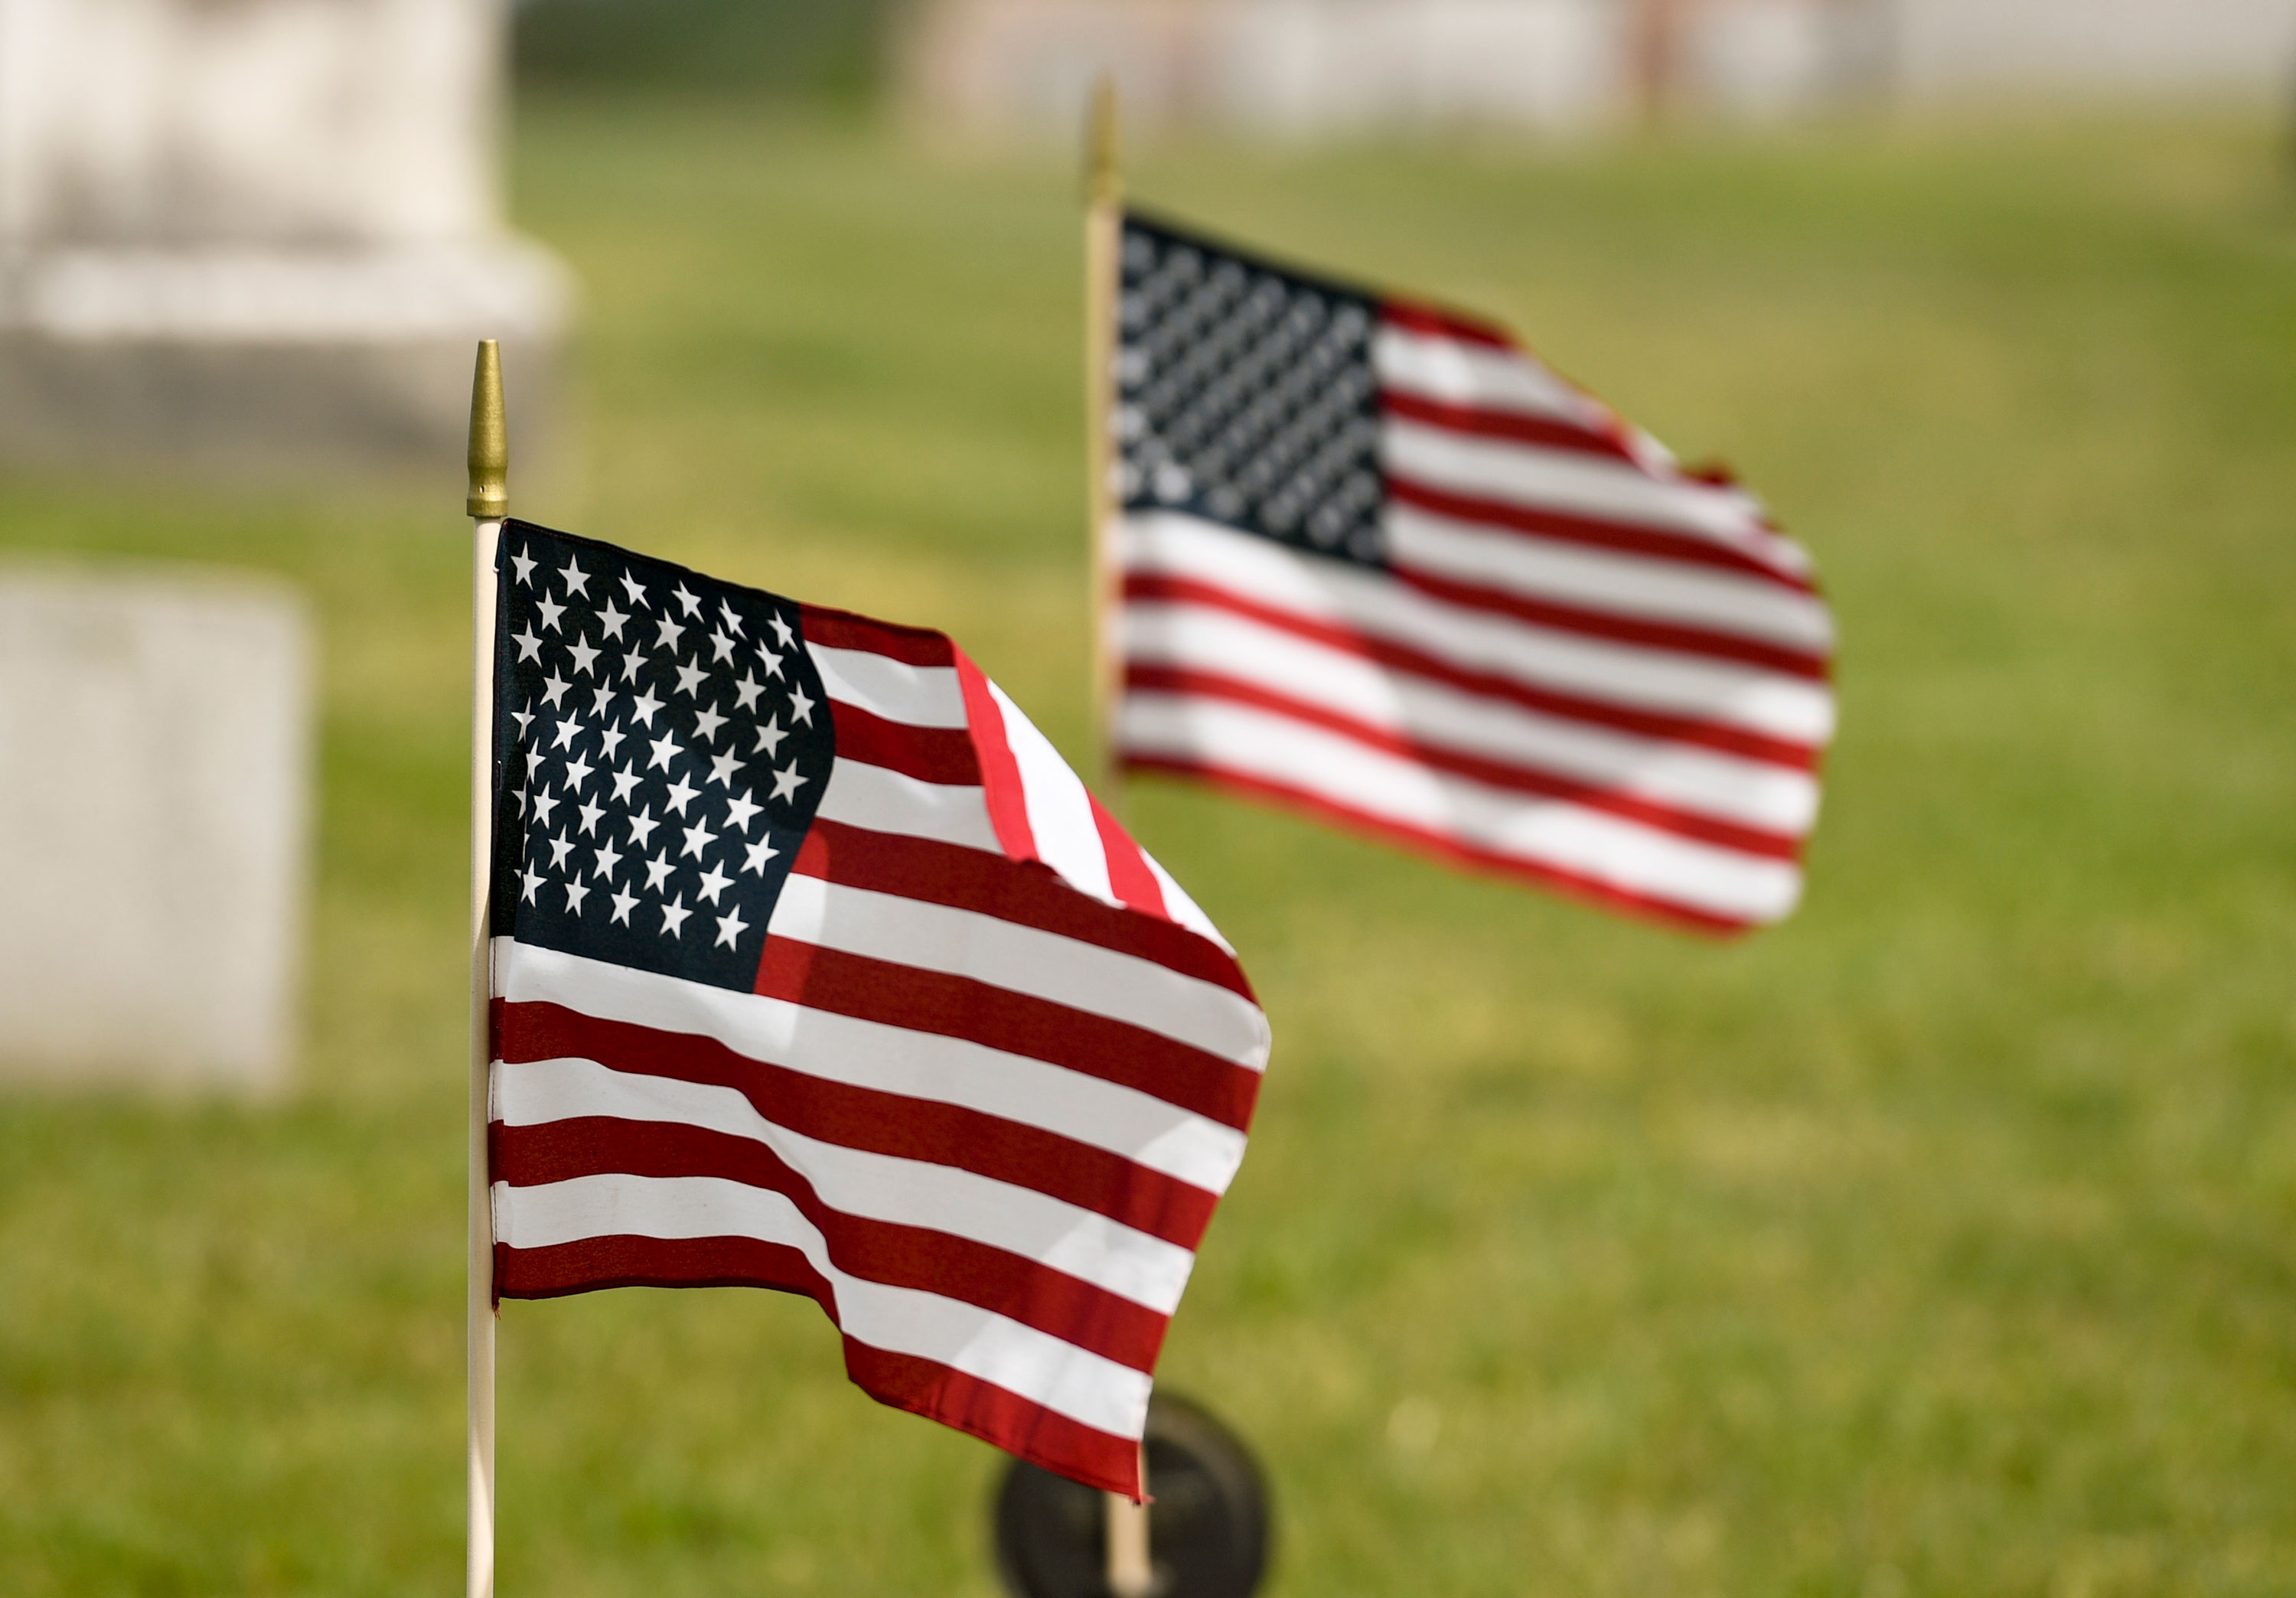 It's Flag Day. Here are some fun facts about the American flag you may not have known